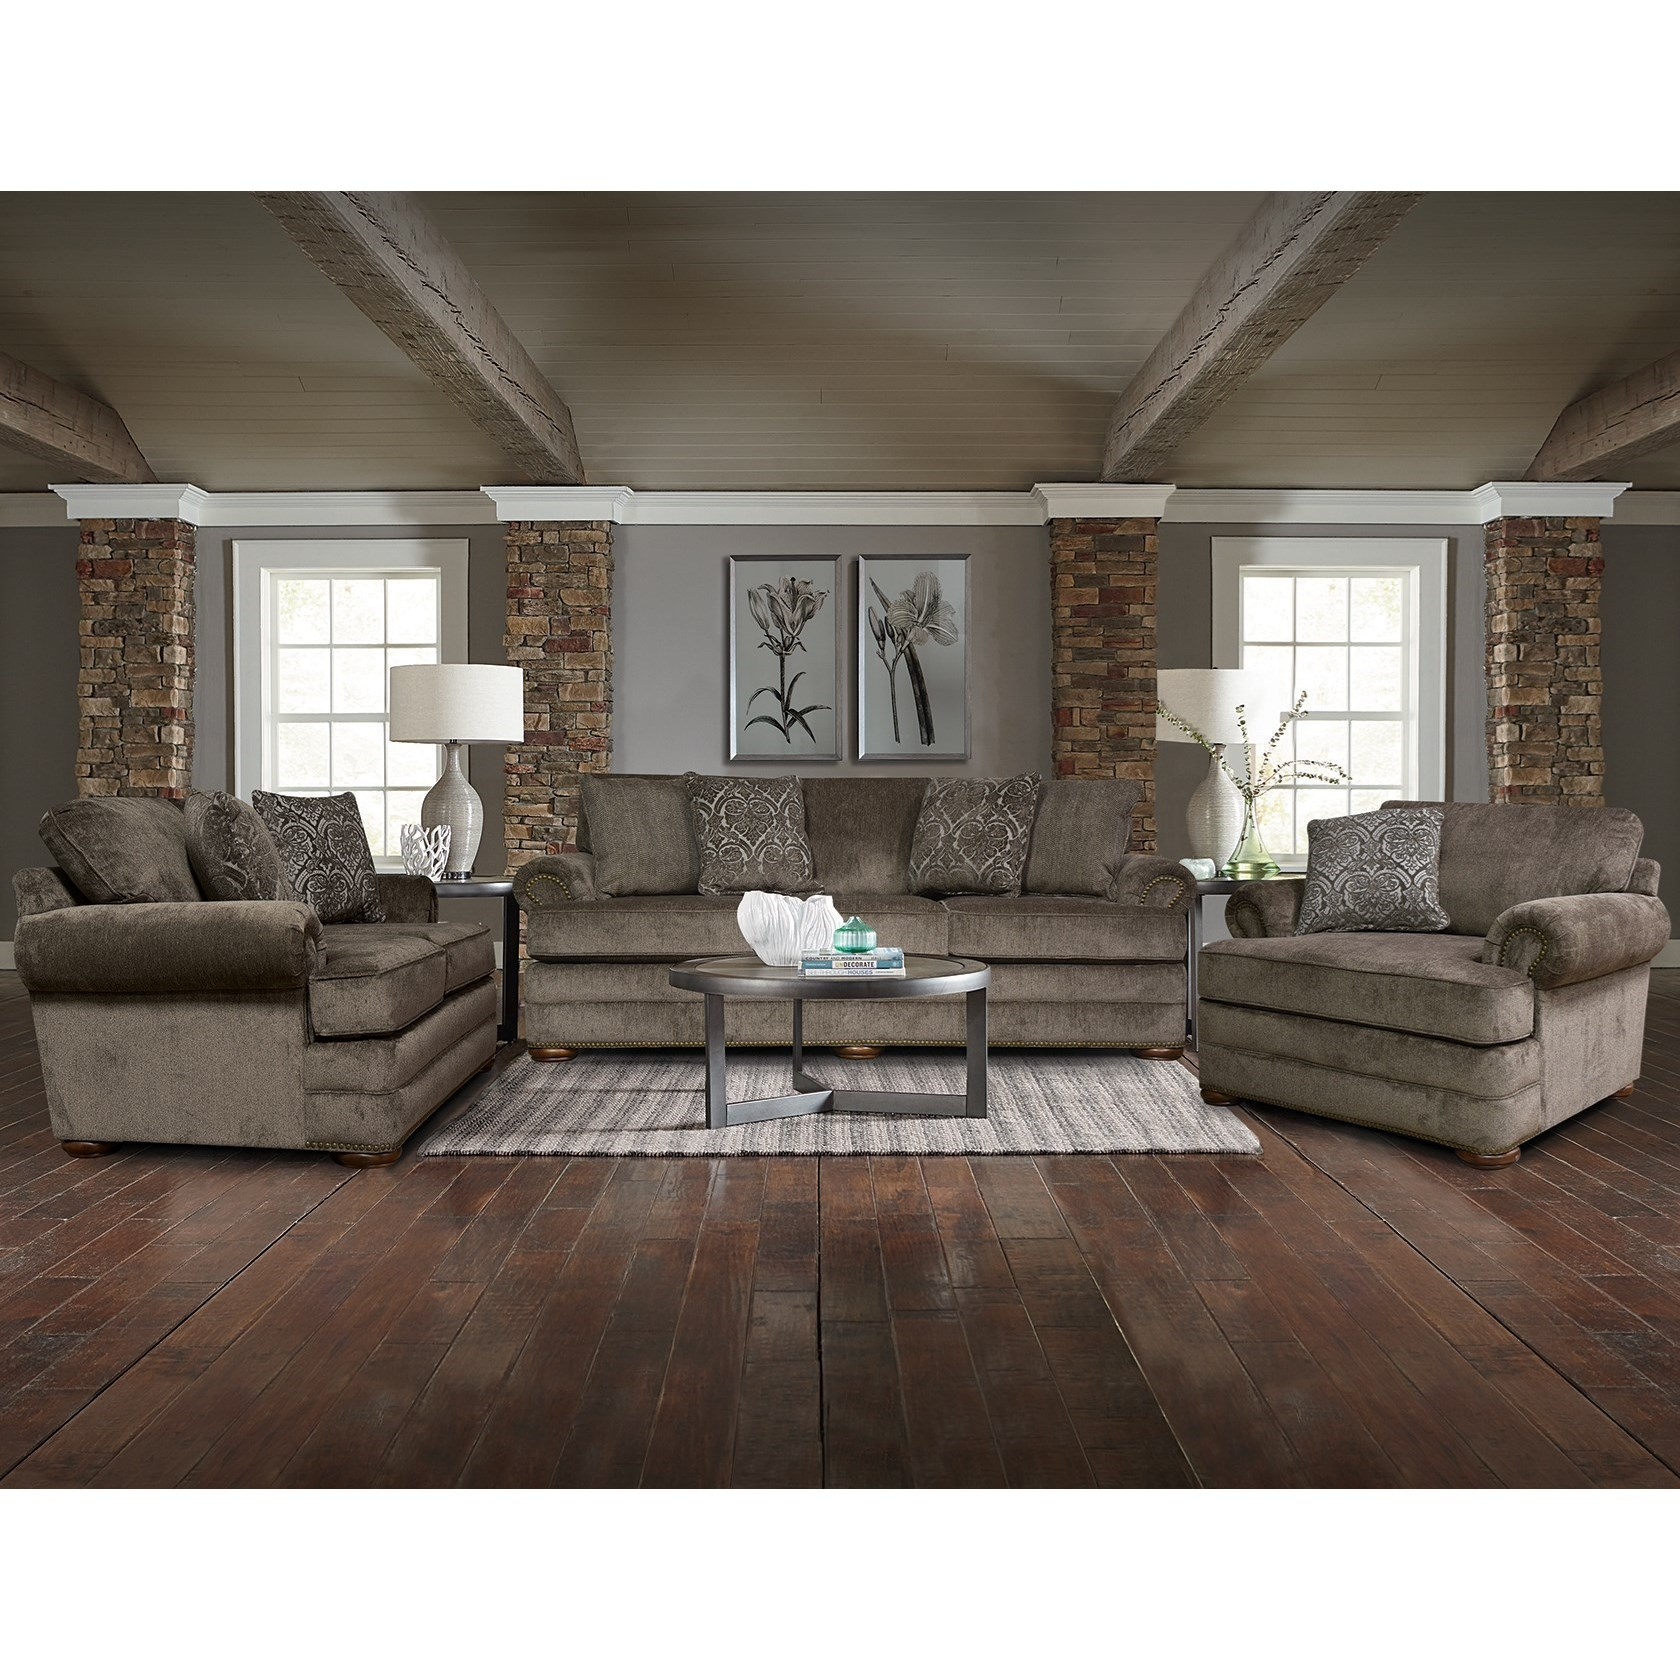 Knox Stationary Living Room Group by England at Story & Lee Furniture